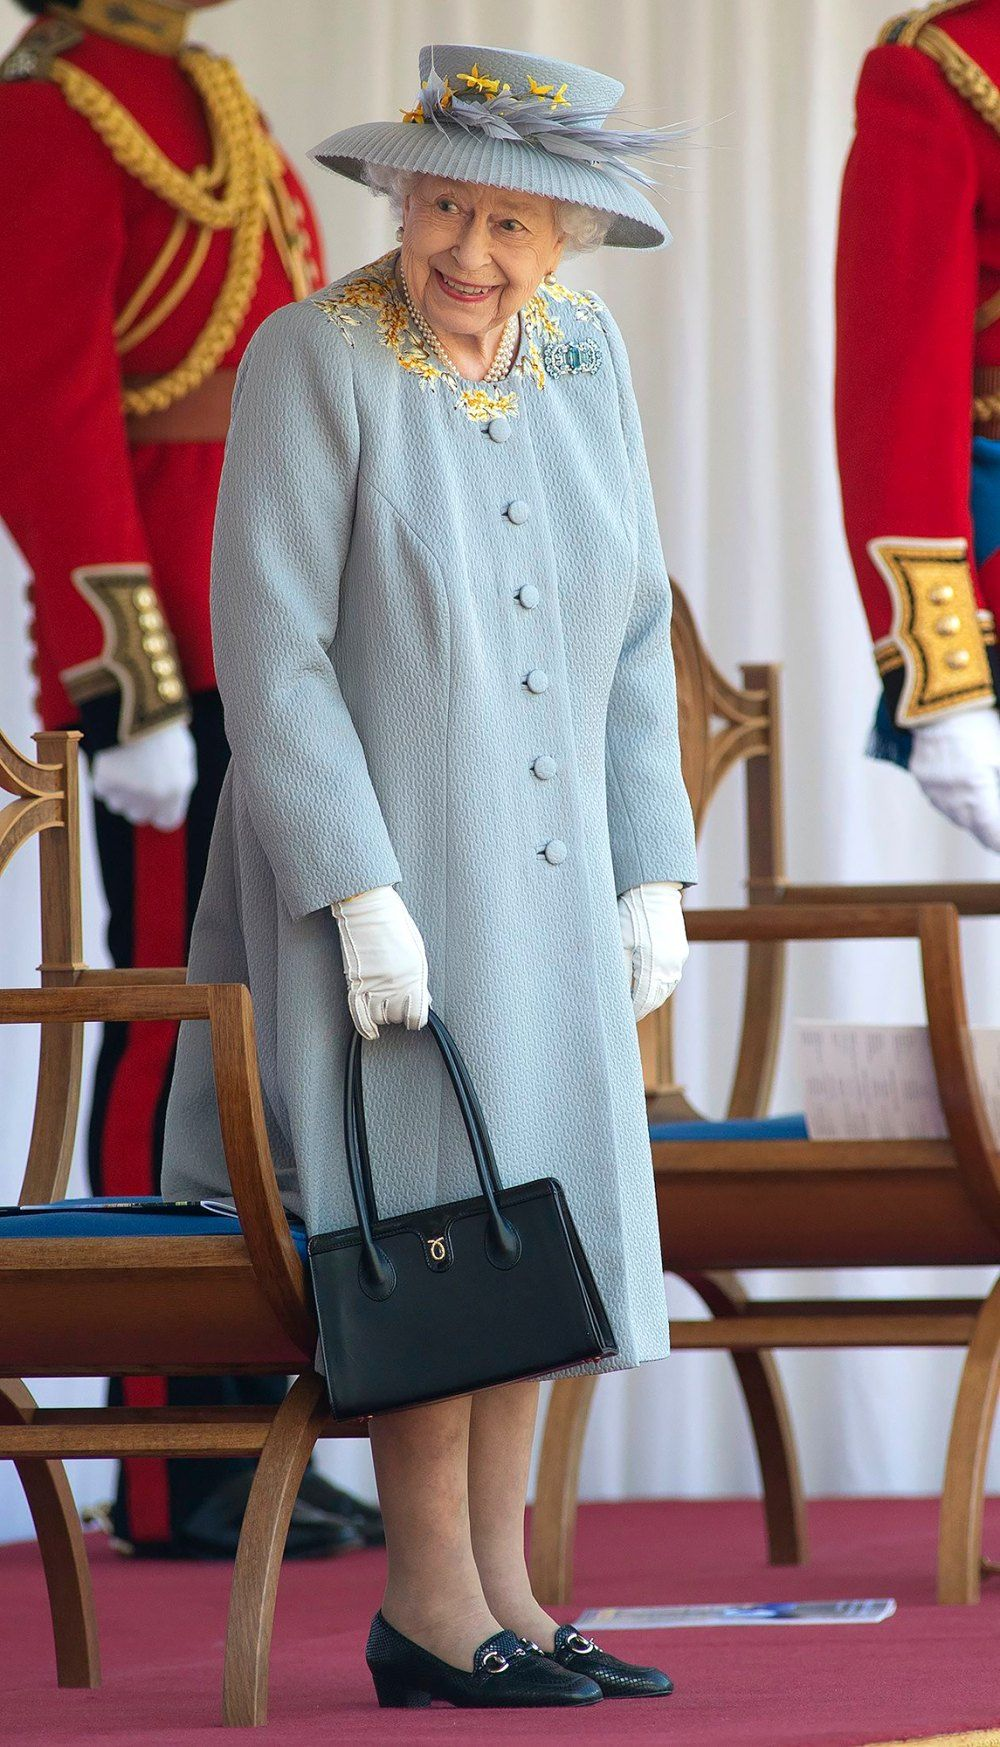 Queen-Elizabeth-Celebrates-Trooping-of-the-Colour-Without-the-Royal-Family-03.jpg